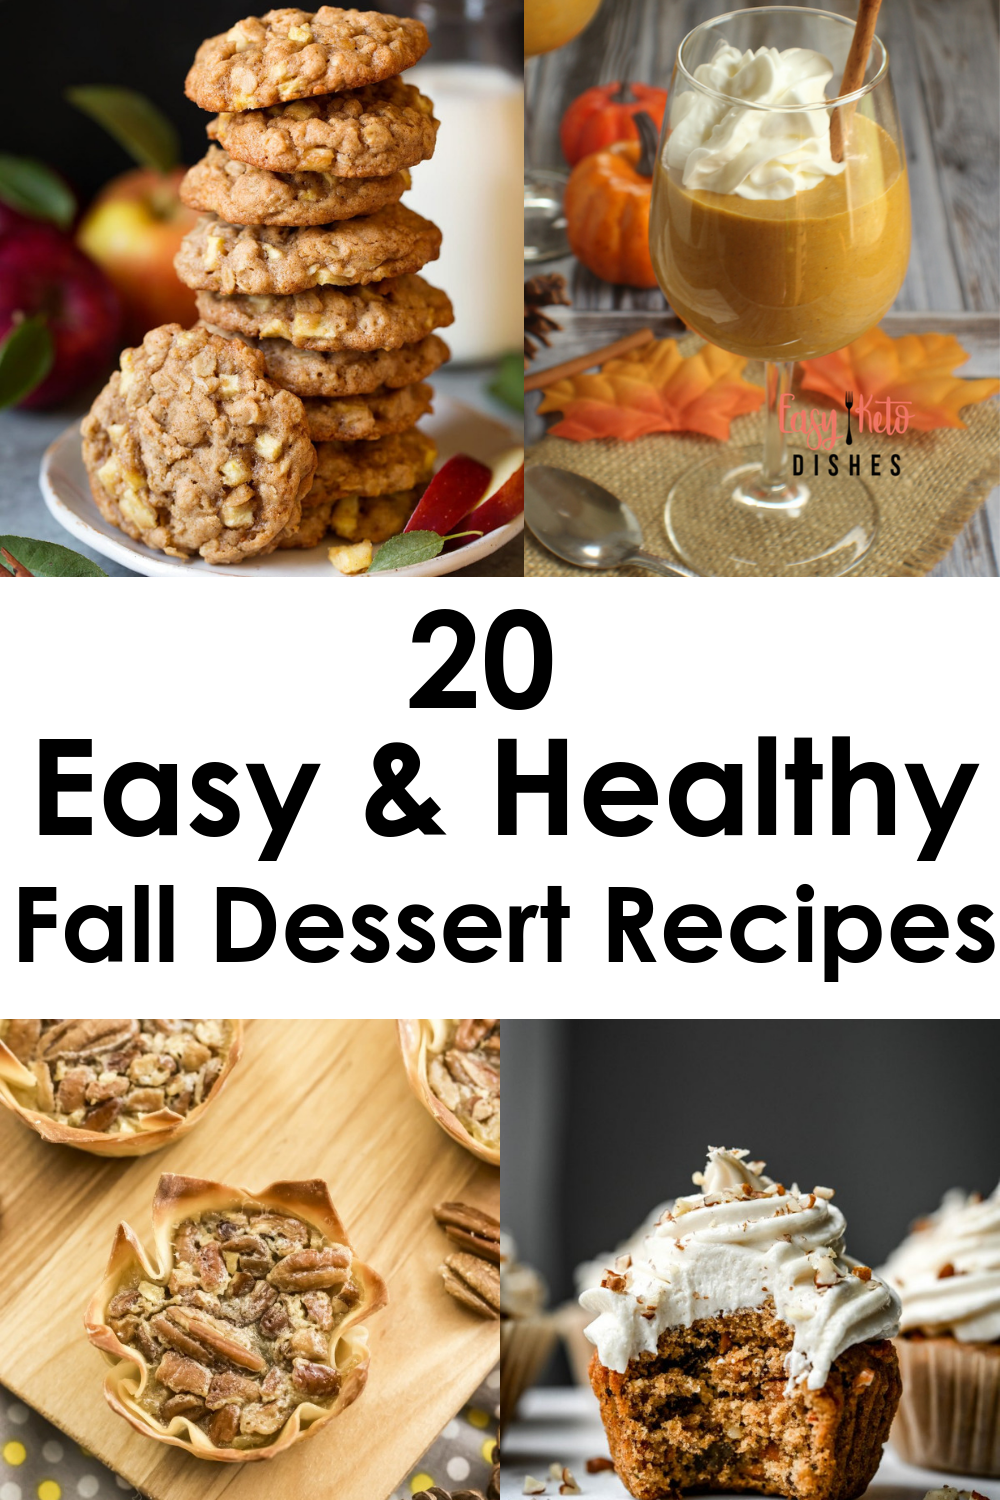 20 Easy And Healthy Fall Dessert Recipes Healthy Fall Desserts Fall Dessert Recipes Dessert Recipes